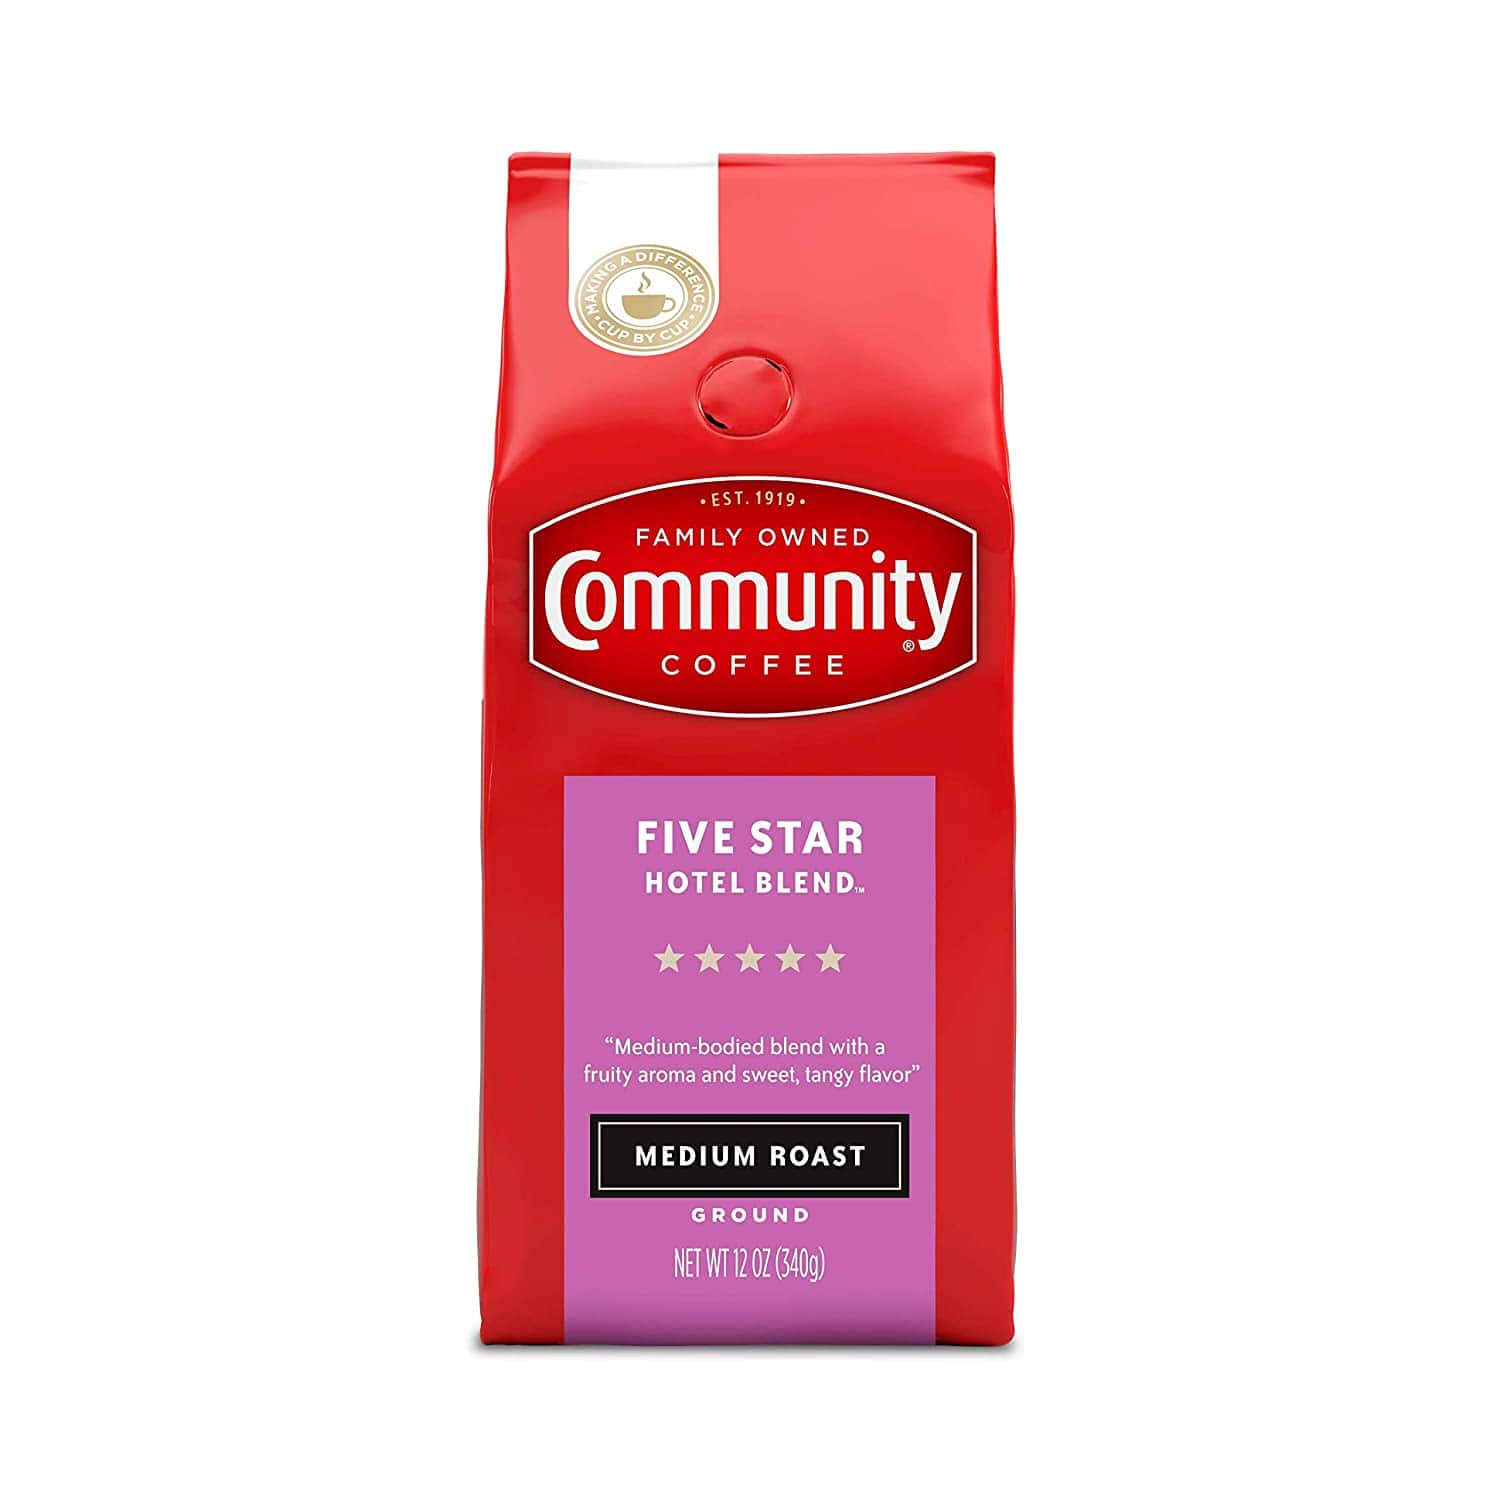 12-Oz Community Coffee Five Star Hotel Blend (Medium Roast Coffee, Ground) $3.13 & More + Free Shipping w/ Prime or $25+